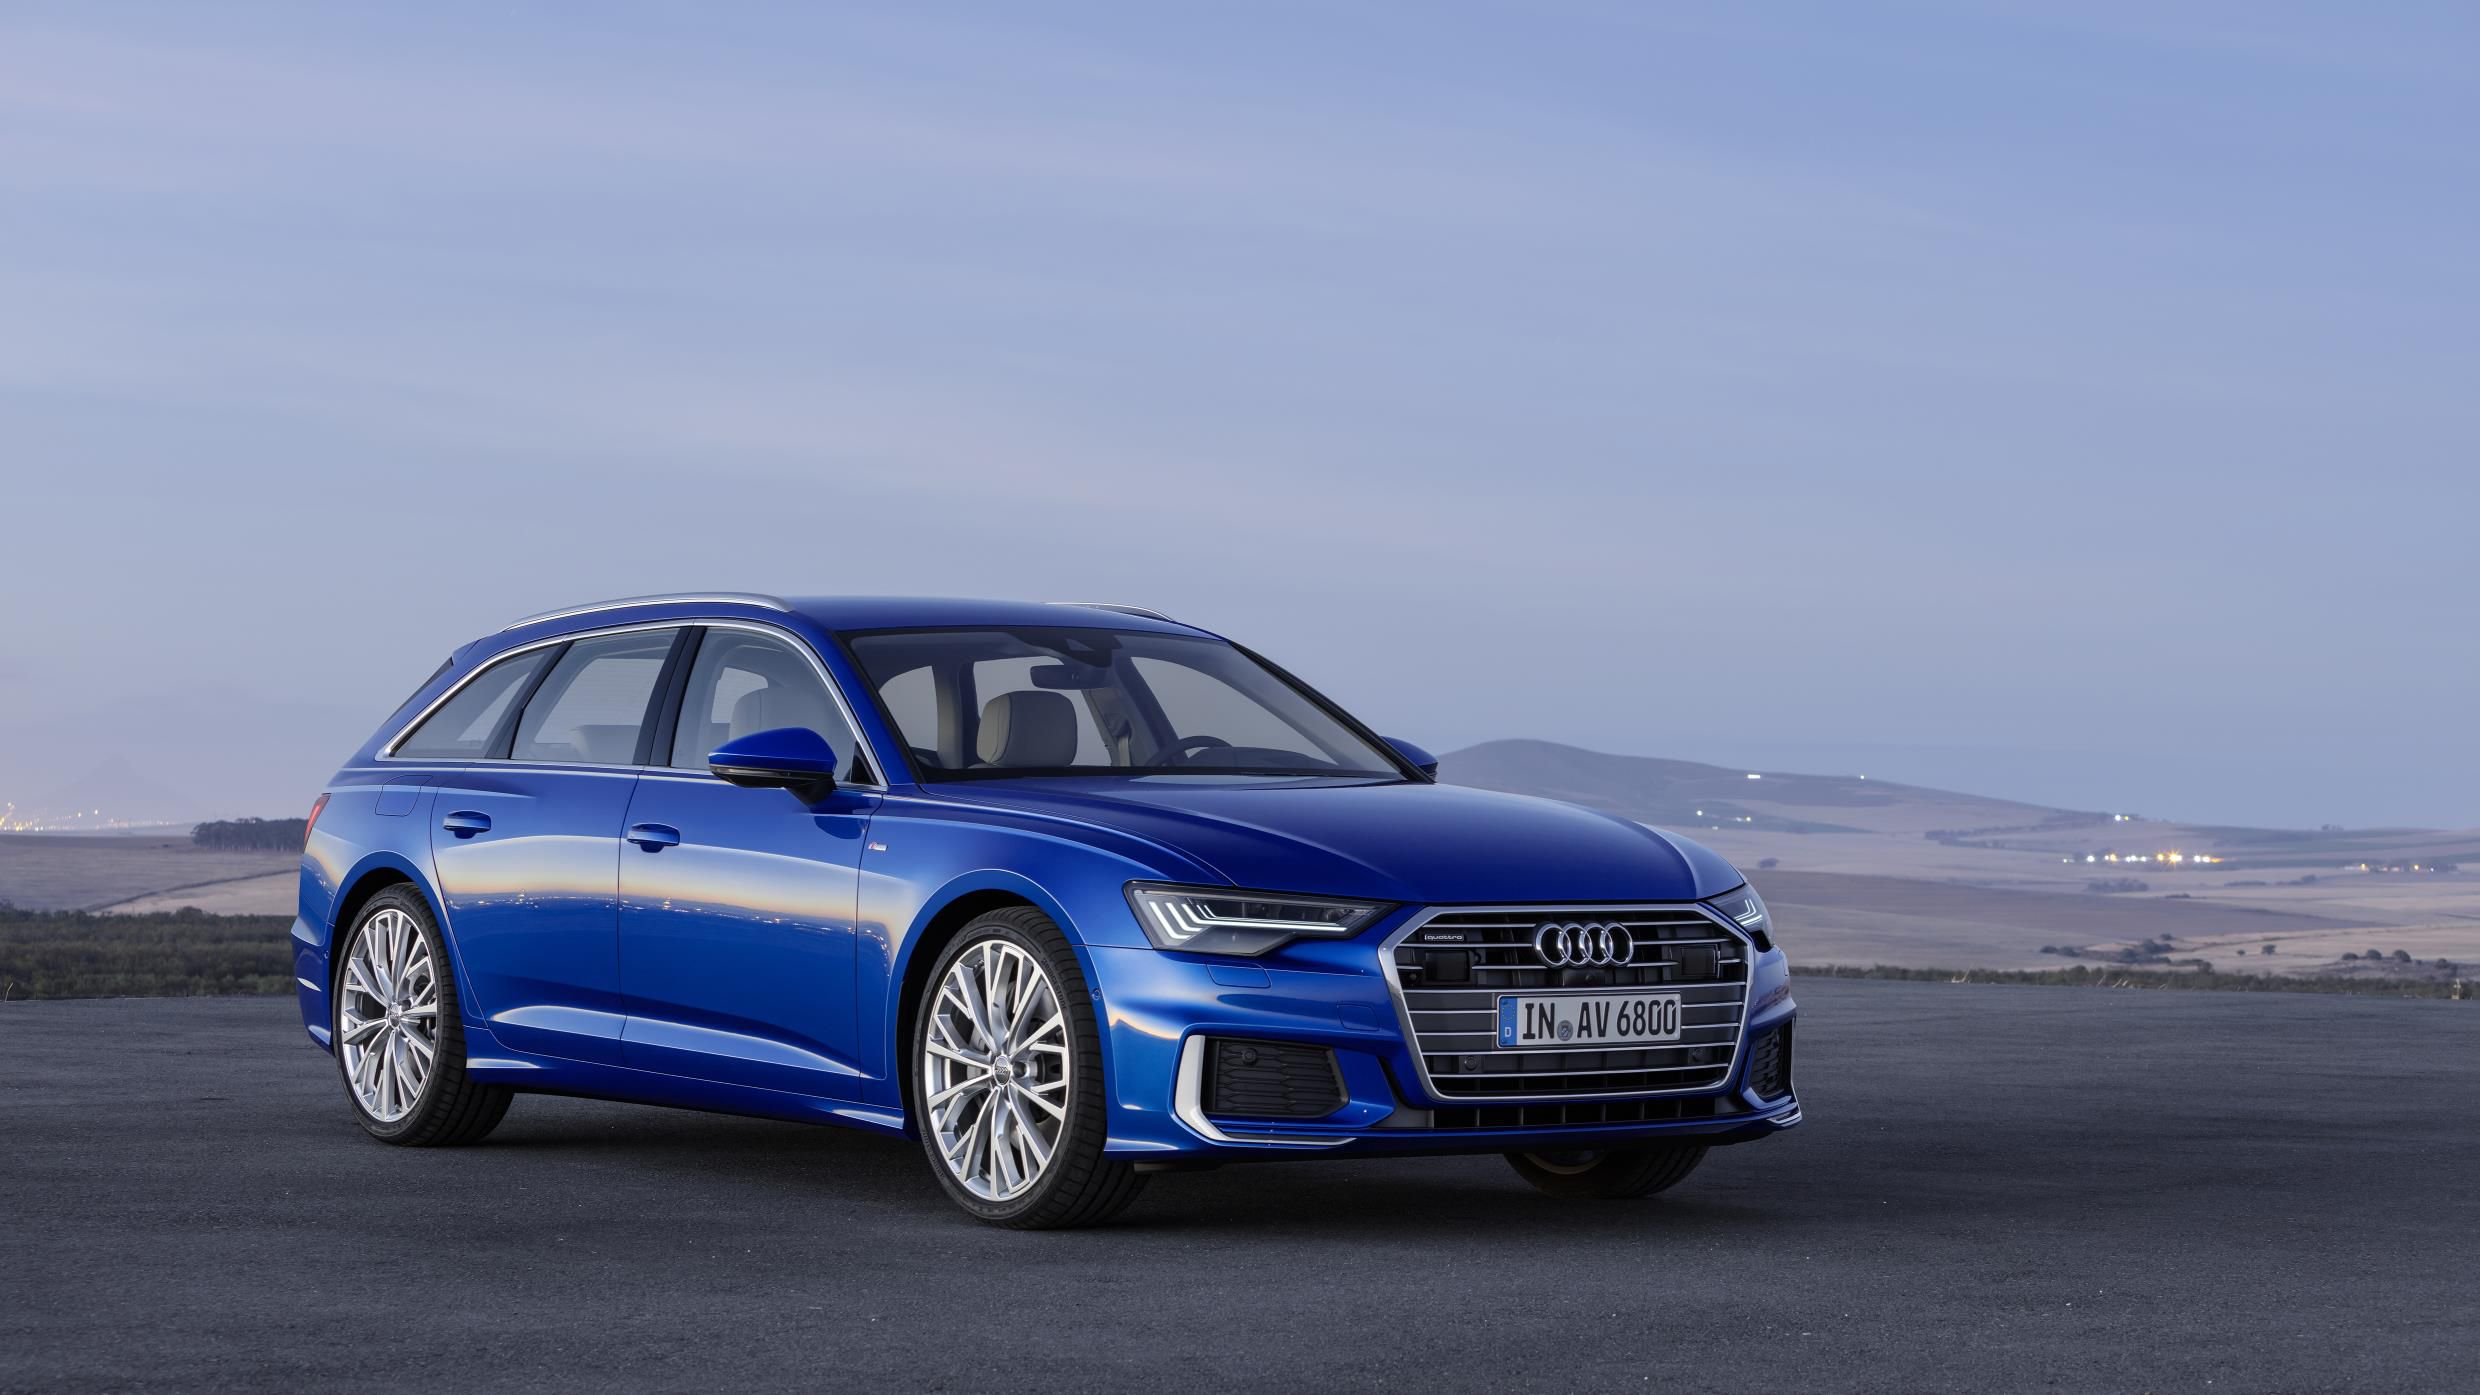 Bright cobalt blue Audi A6 Avant stationary with long distance vista